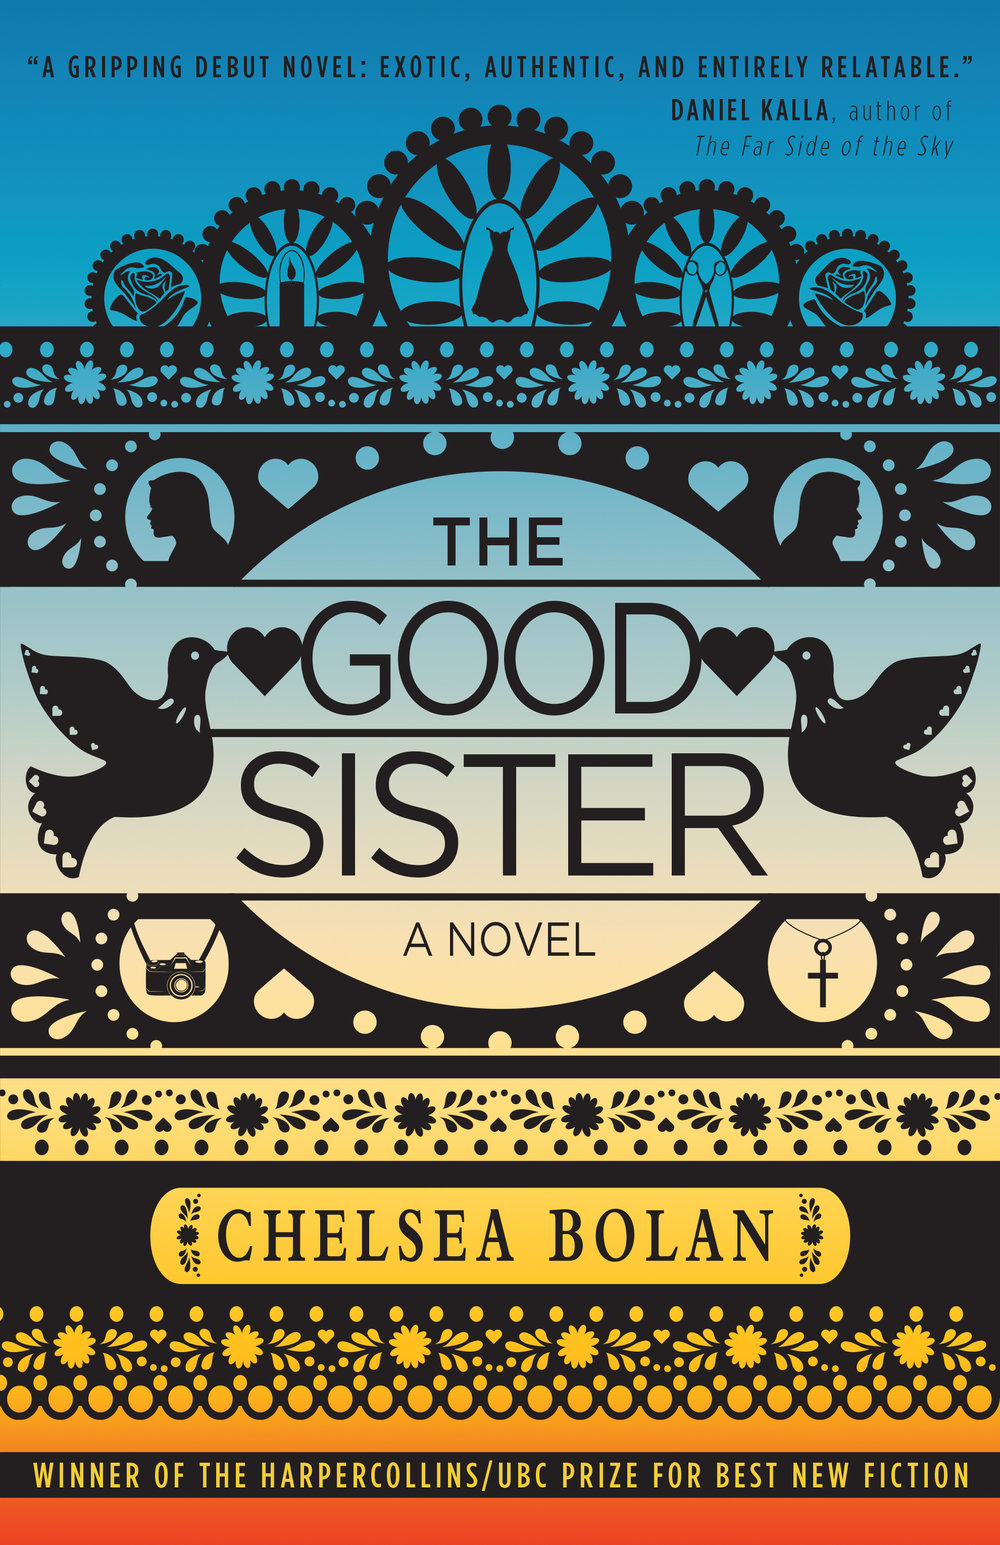 - The Good Sister, by Cheslea BolanAbout the DesignThe cover for this book was drawn by Amy Frueh to look like a mexican papel picado (paper cutout). She drew all elements of this cover using Adobe Illustrator and each image is an icon representing a person or an event from the novel.Published 2016, HarperCollins CanadaWinner of the HarperCollins/UBC Prize for Best New Fiction